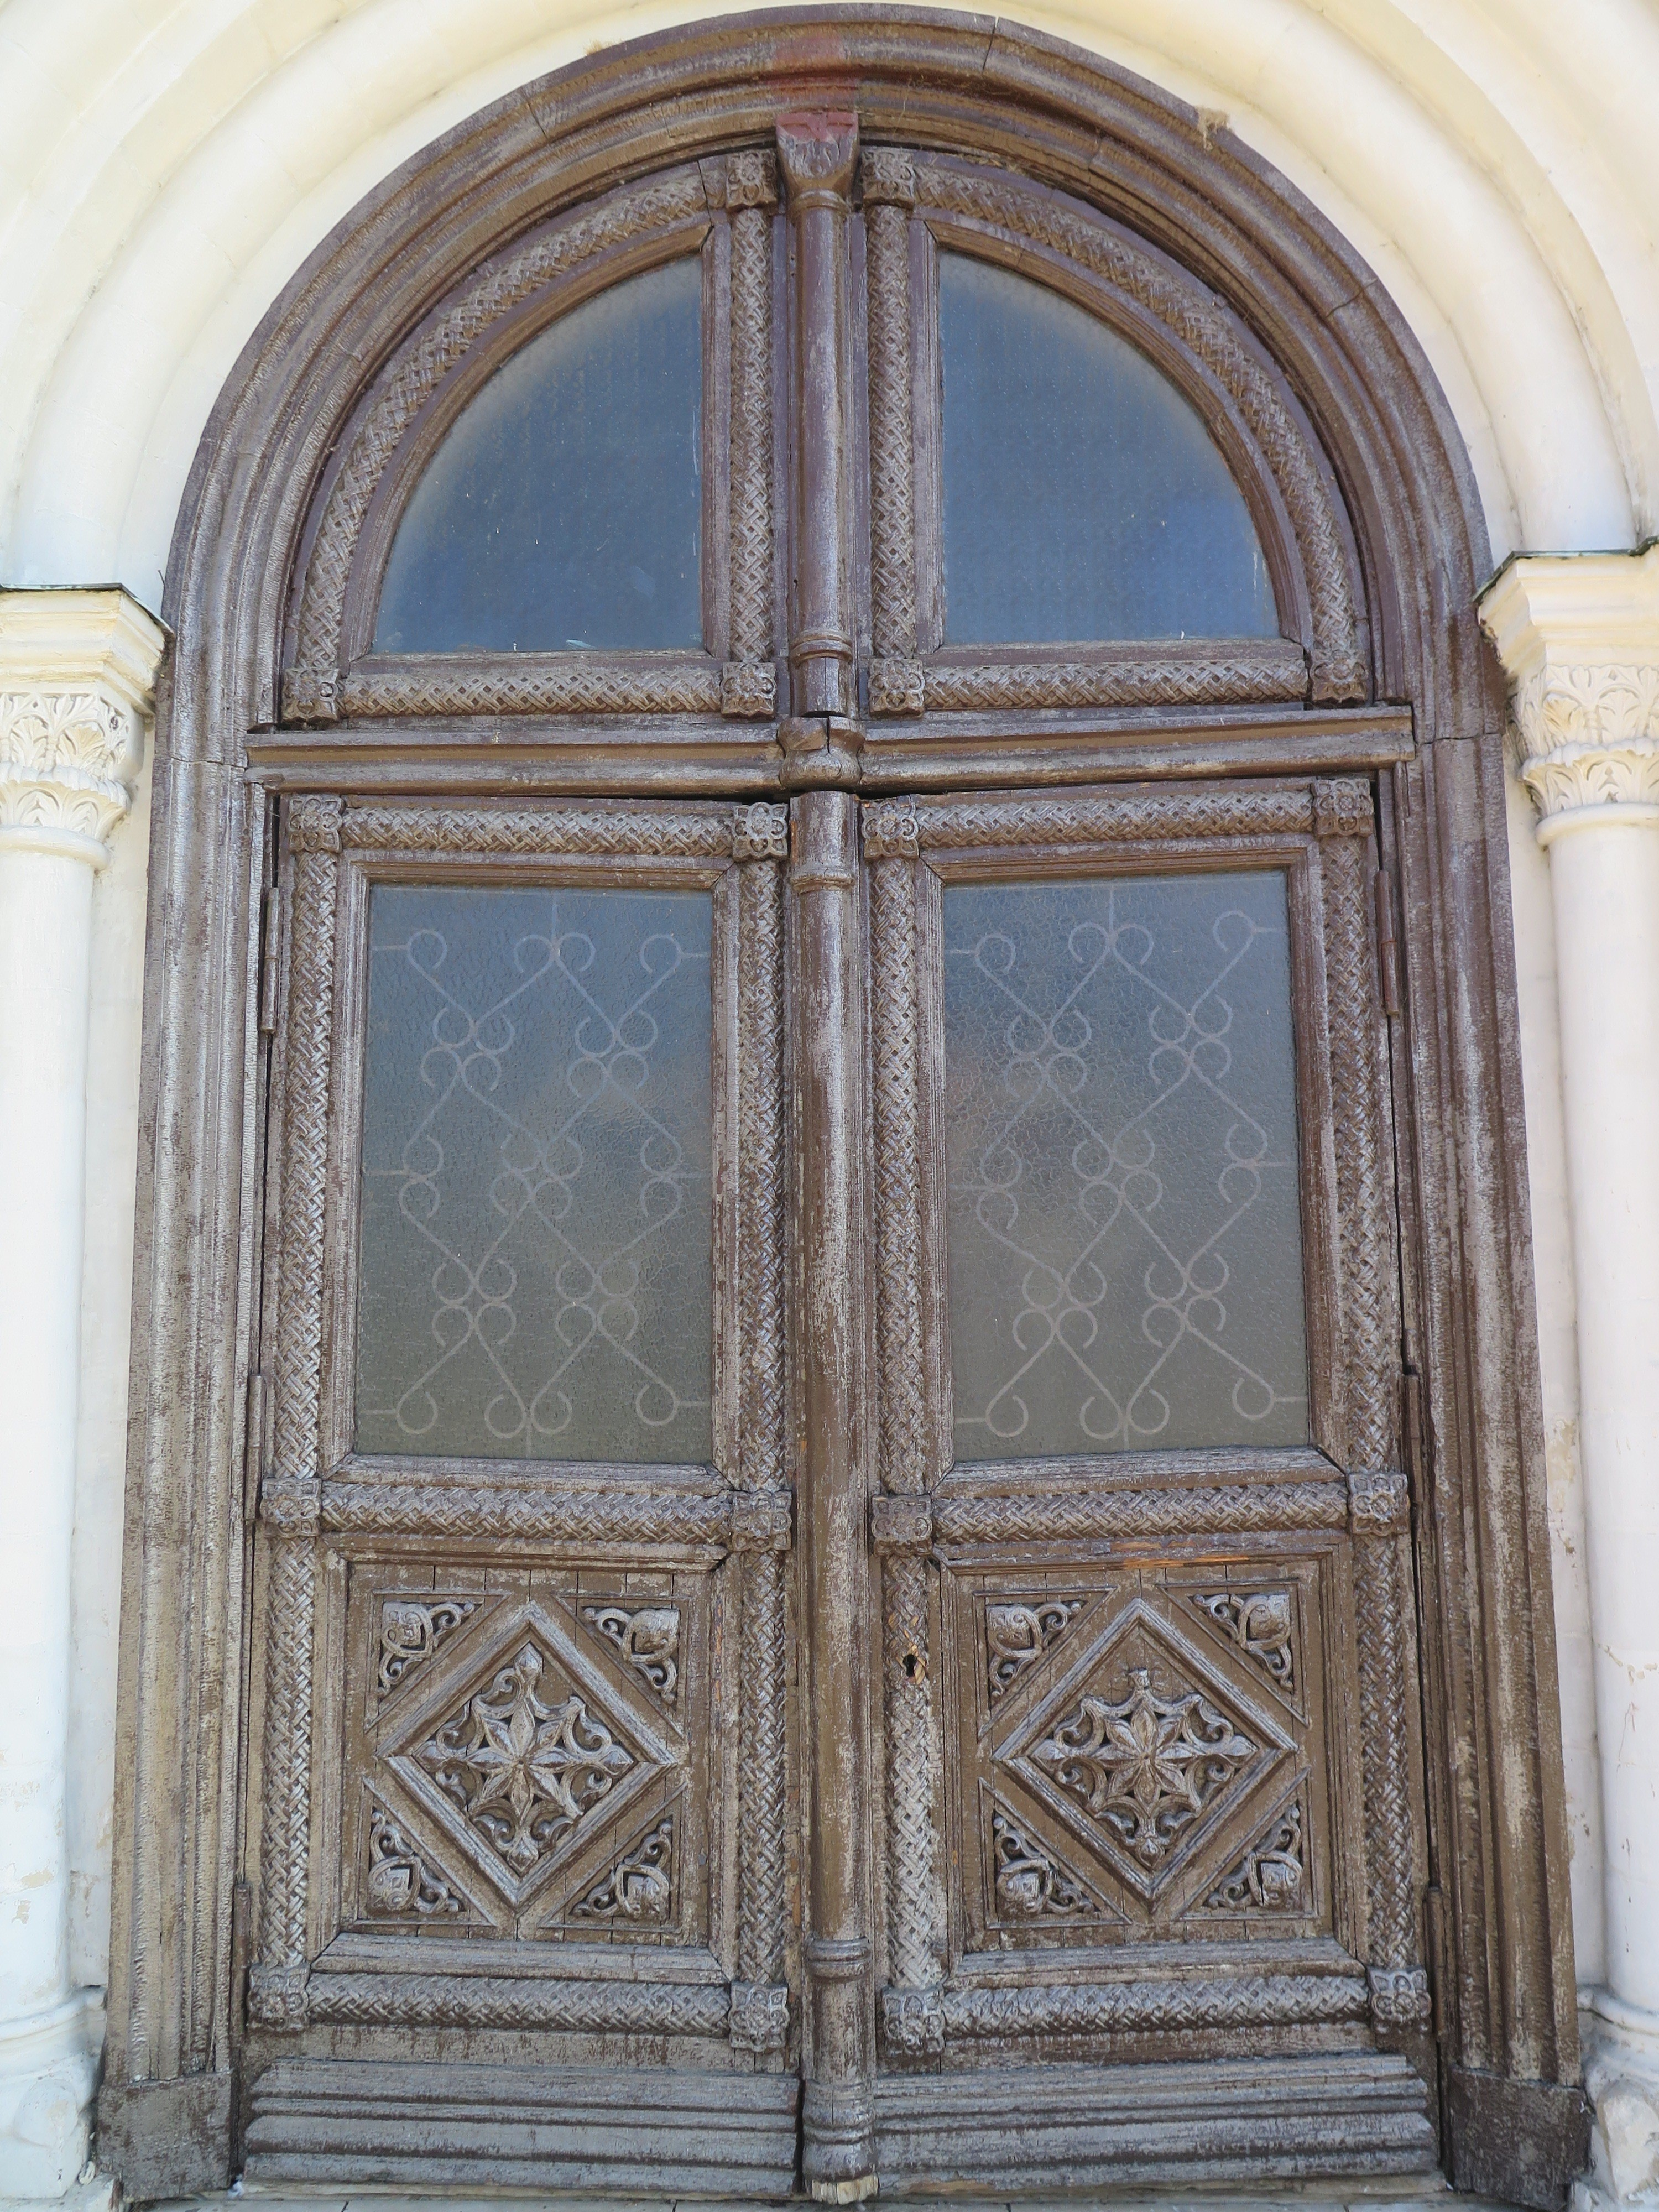 I thought this door on the Assumption Cathedral was beautiful.